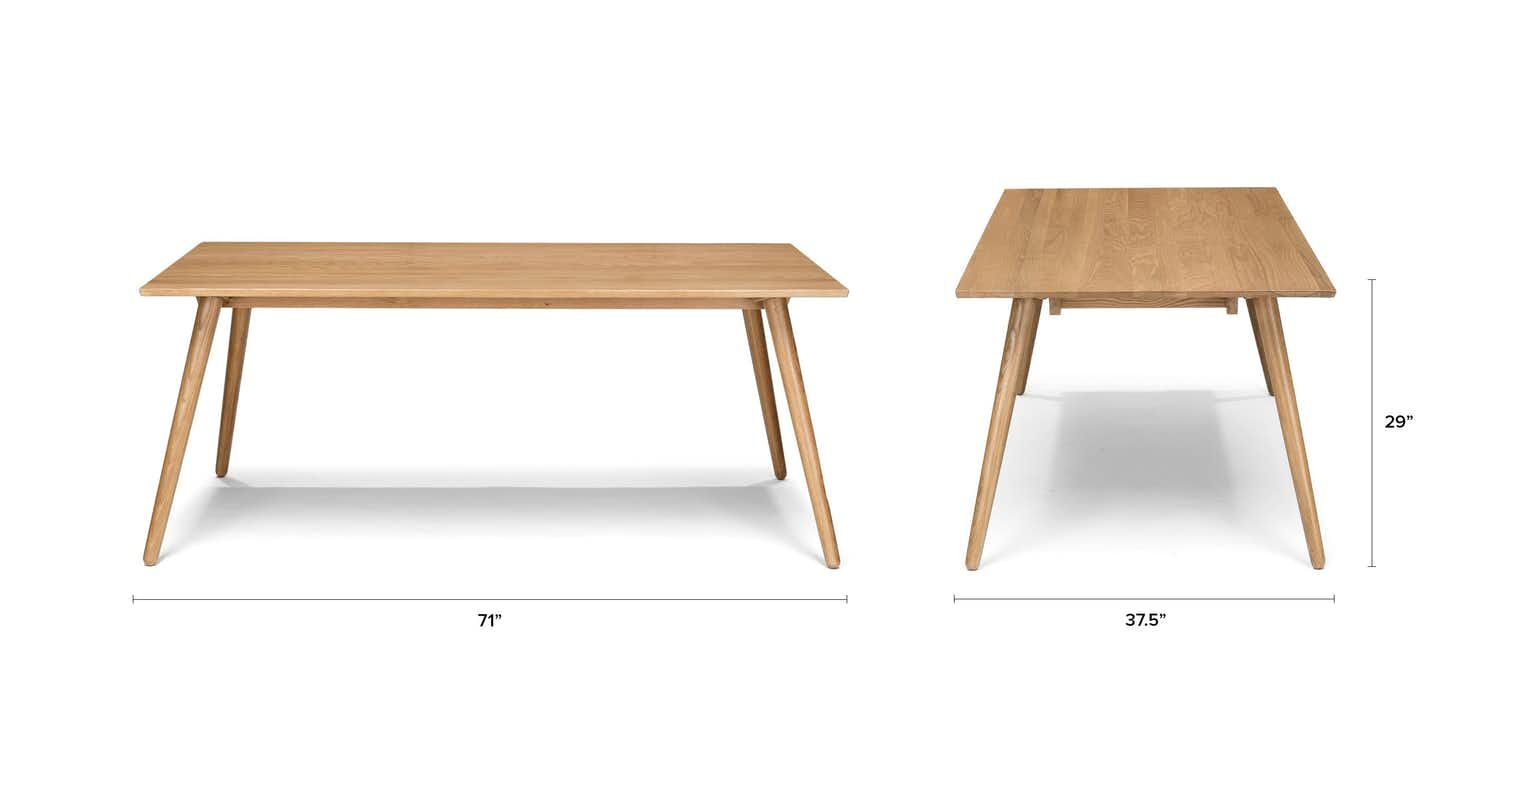 Linear Proportions In Solid American White Oak Make The Seno Table Ideal For A Wonderful Dining Experience